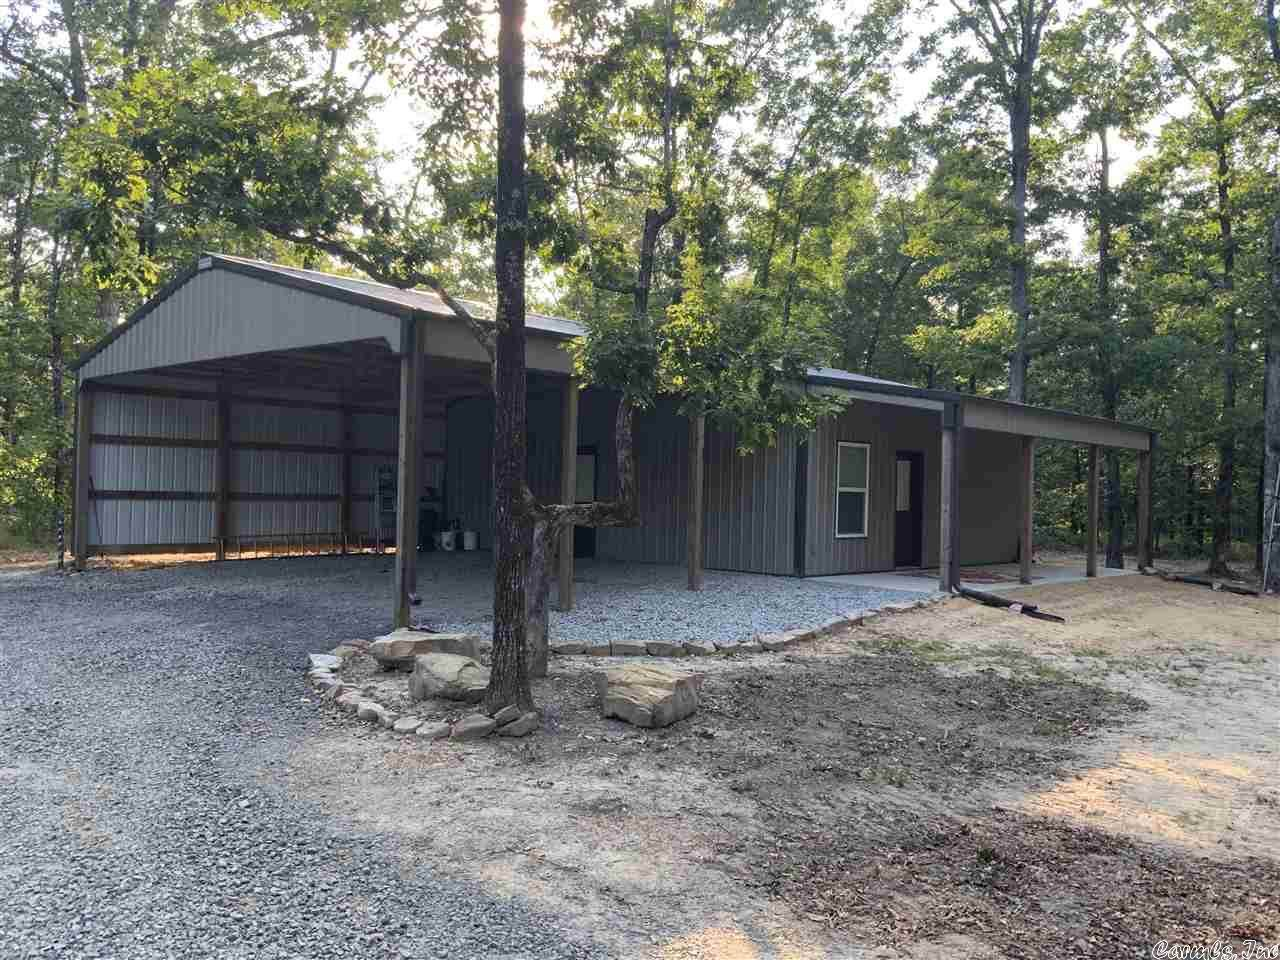 2310 Hwy 92 - Greers Ferry Rd - Photo 1